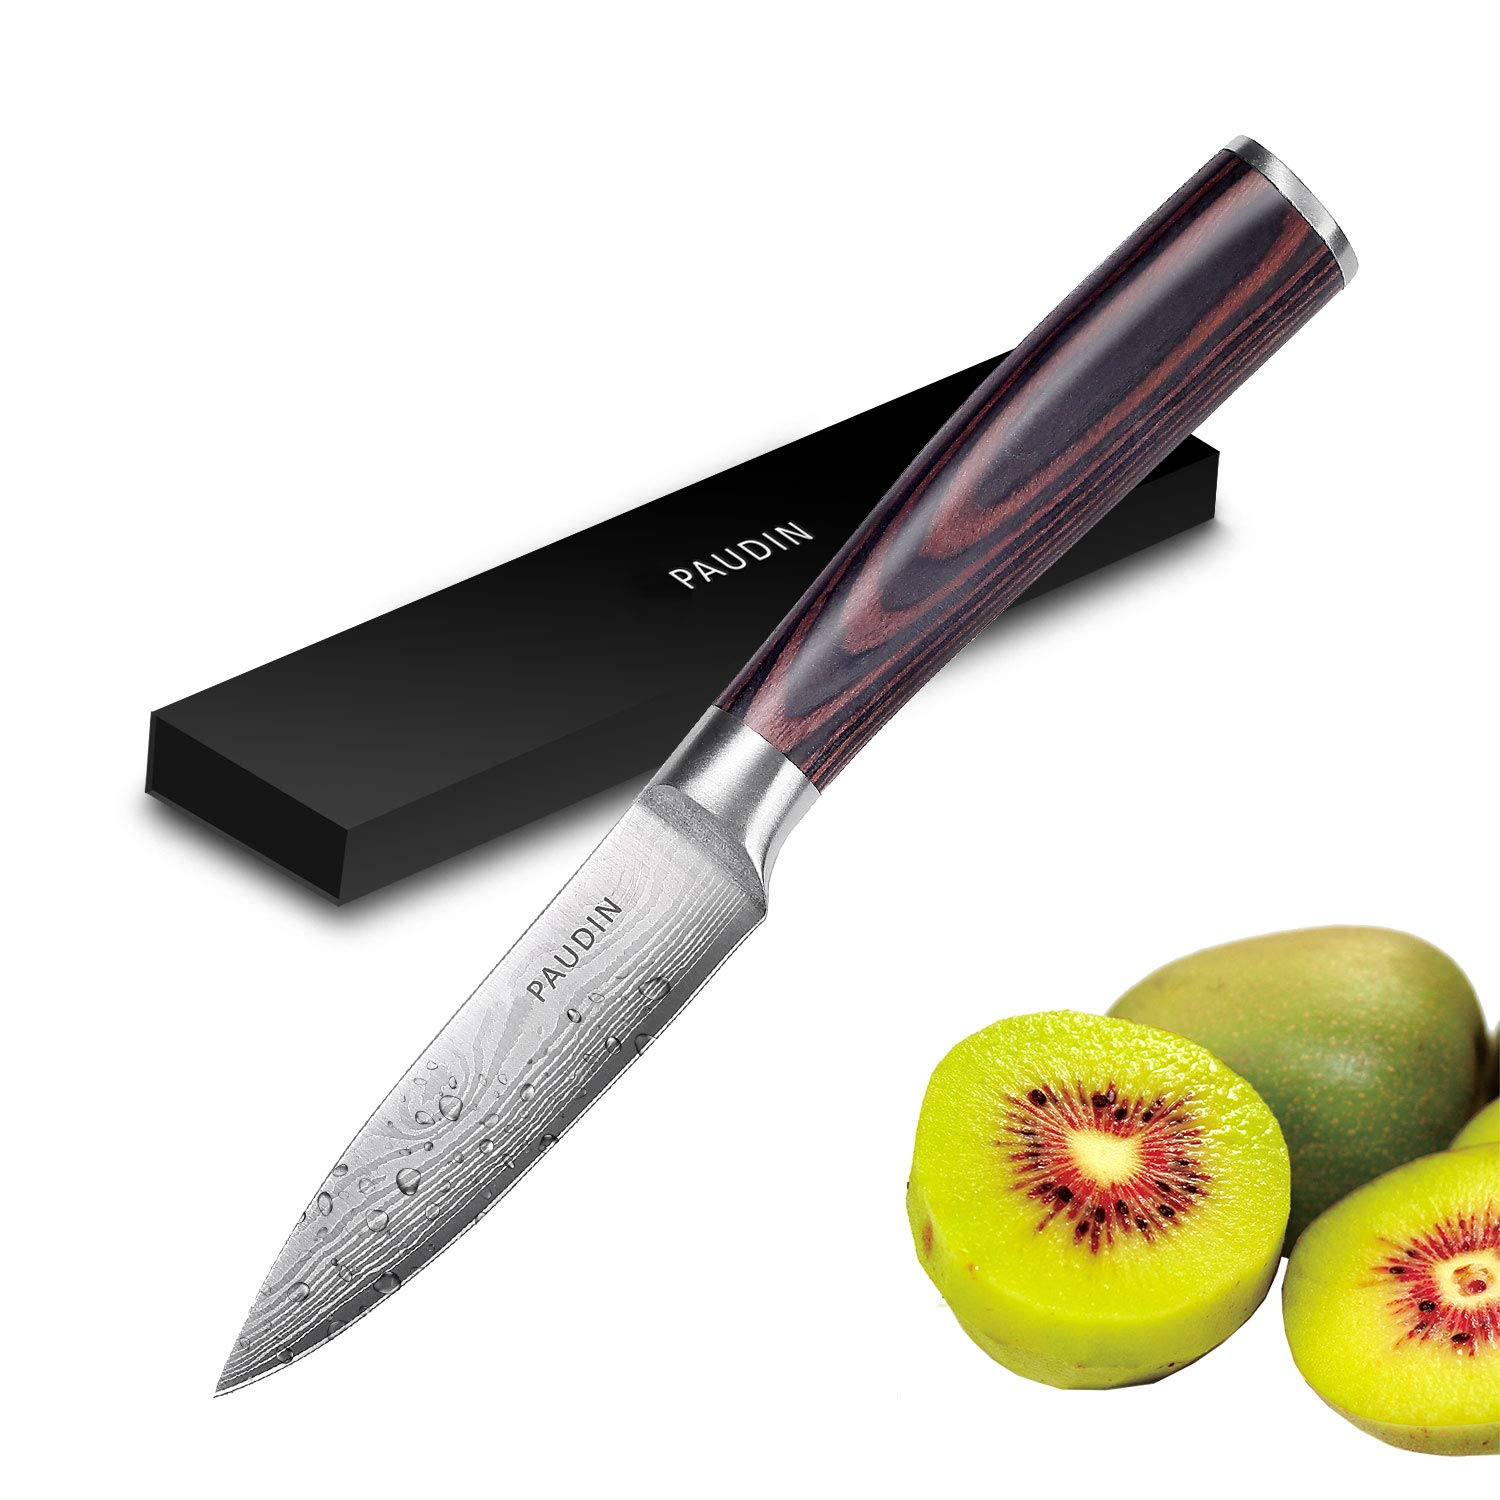 Paring Knife - PAUDIN 3.5 Inch Kitchen Knife N8 German High Carbon Stainless Steel Knife, Fruit and Vegetable Cutting Chopping Carving Knives by PAUDIN (Image #1)